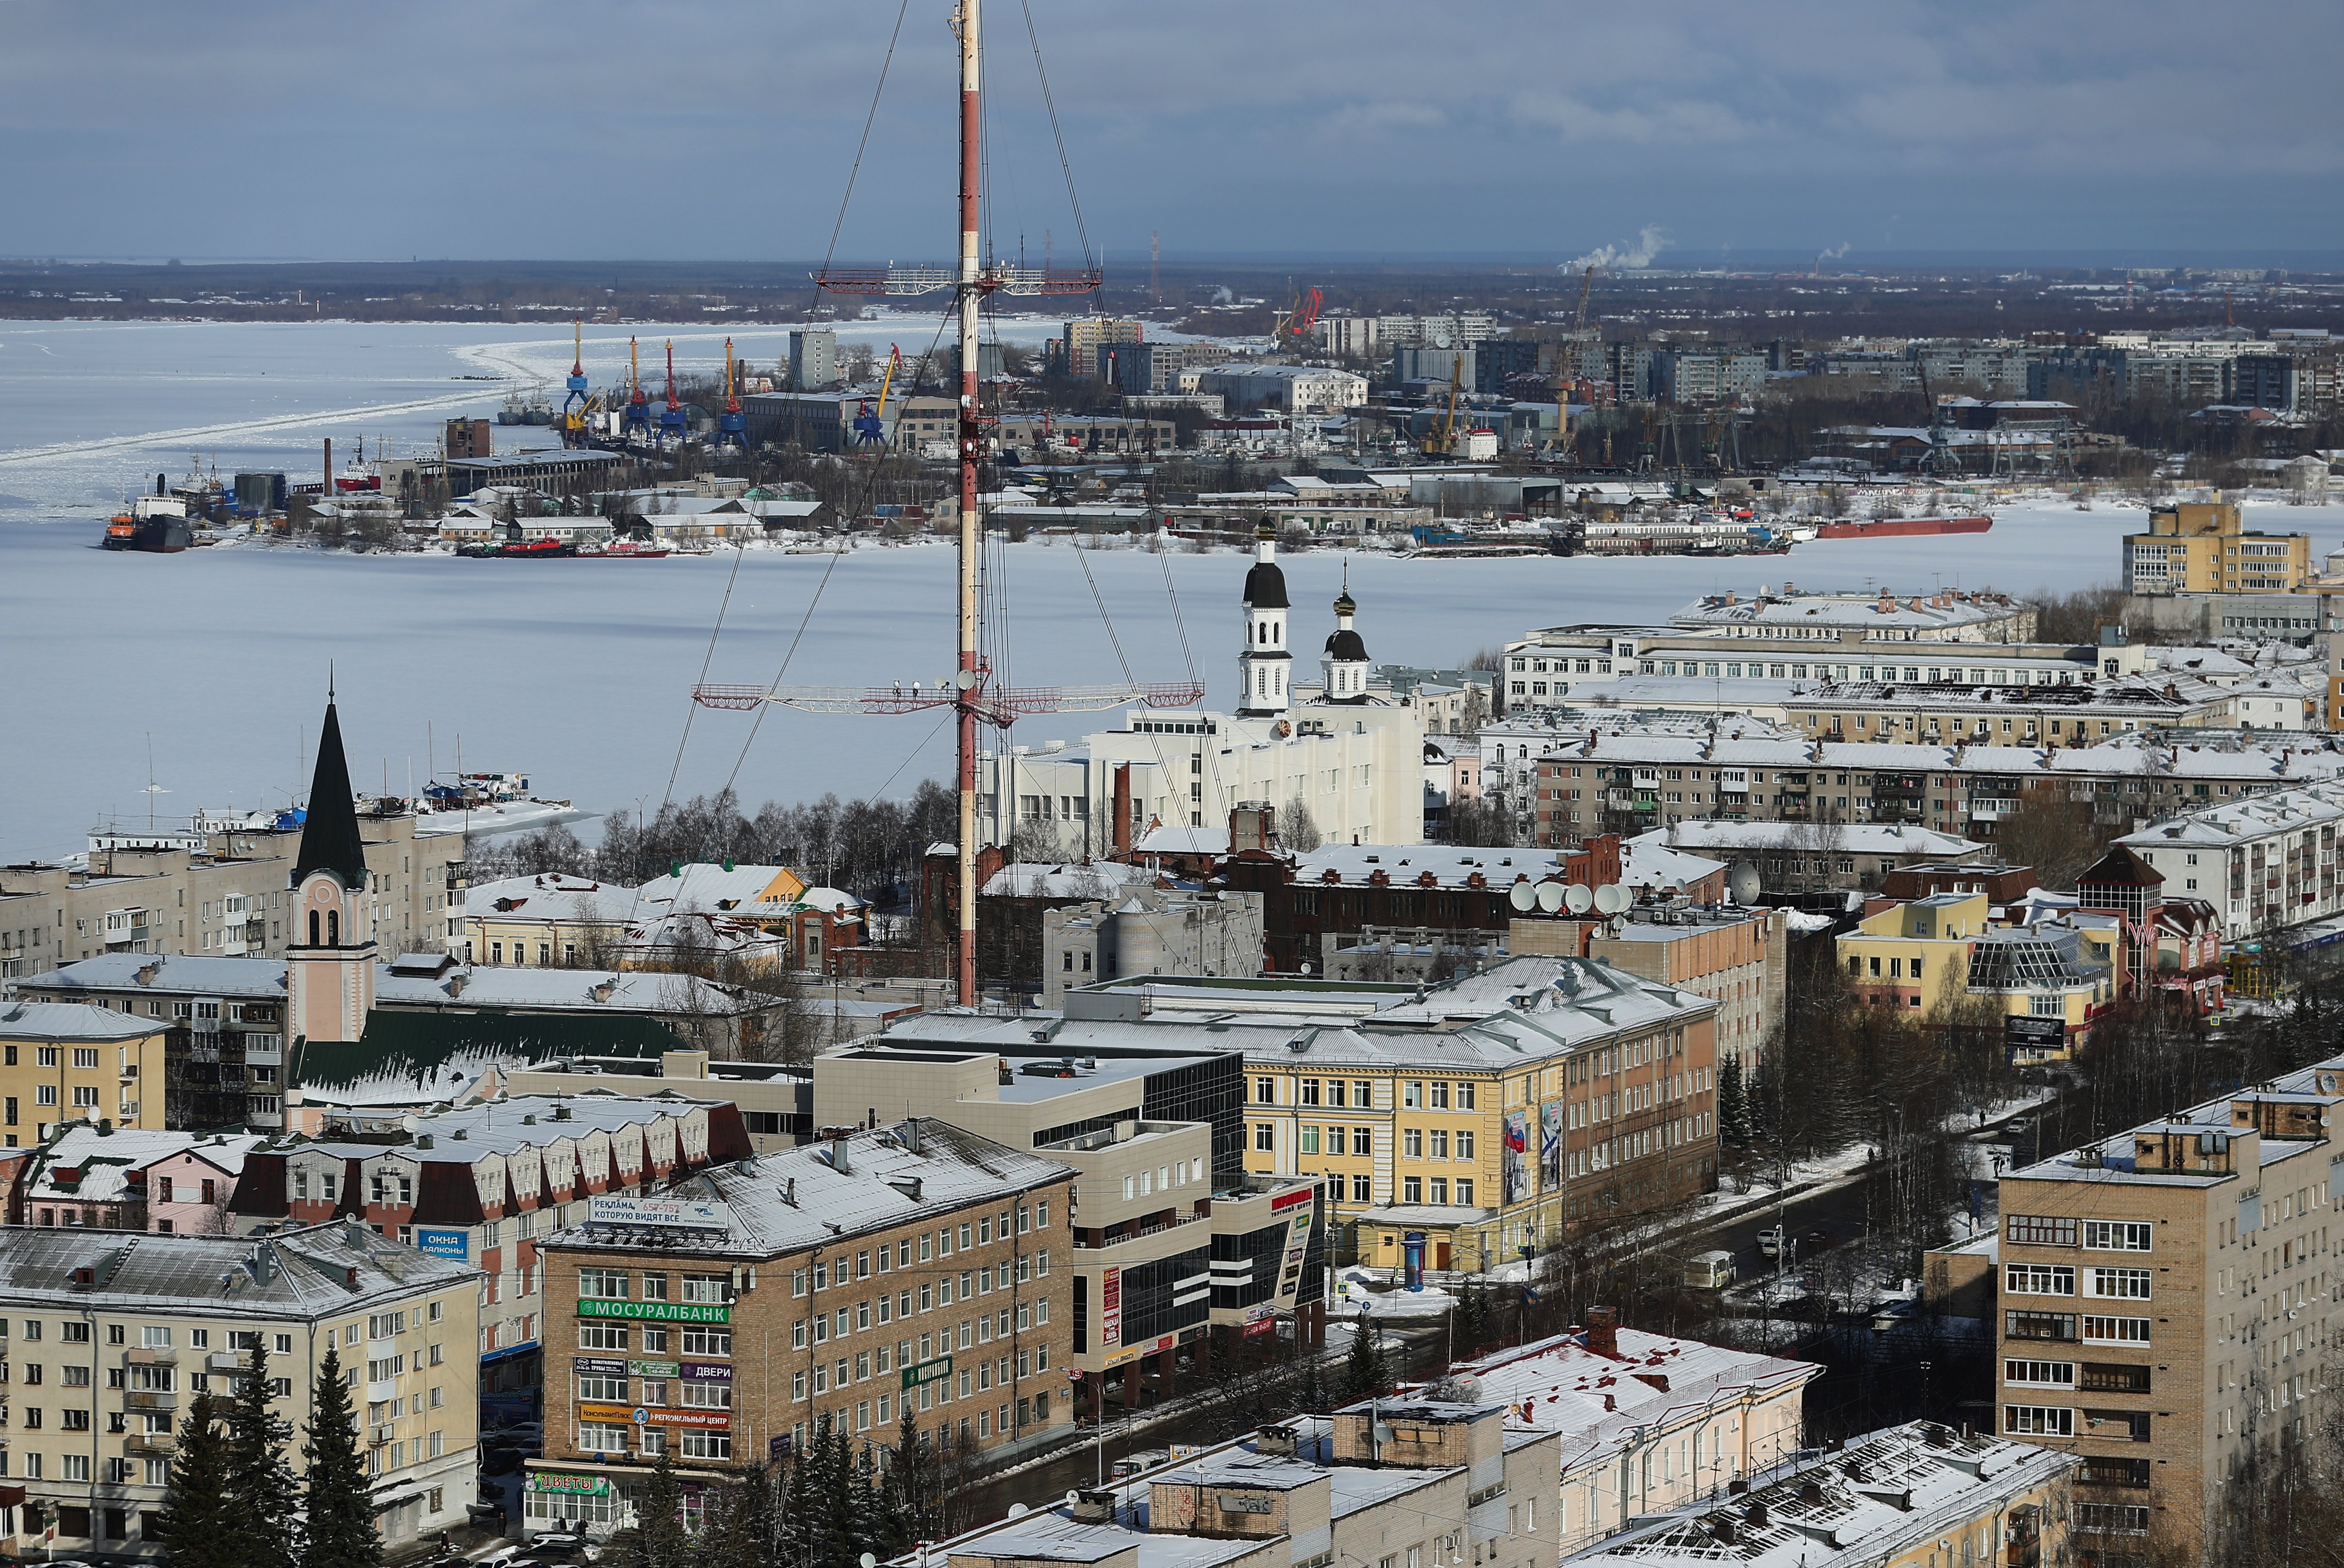 Russia opens Arctic forum aimed at highlighting cooperation in the region